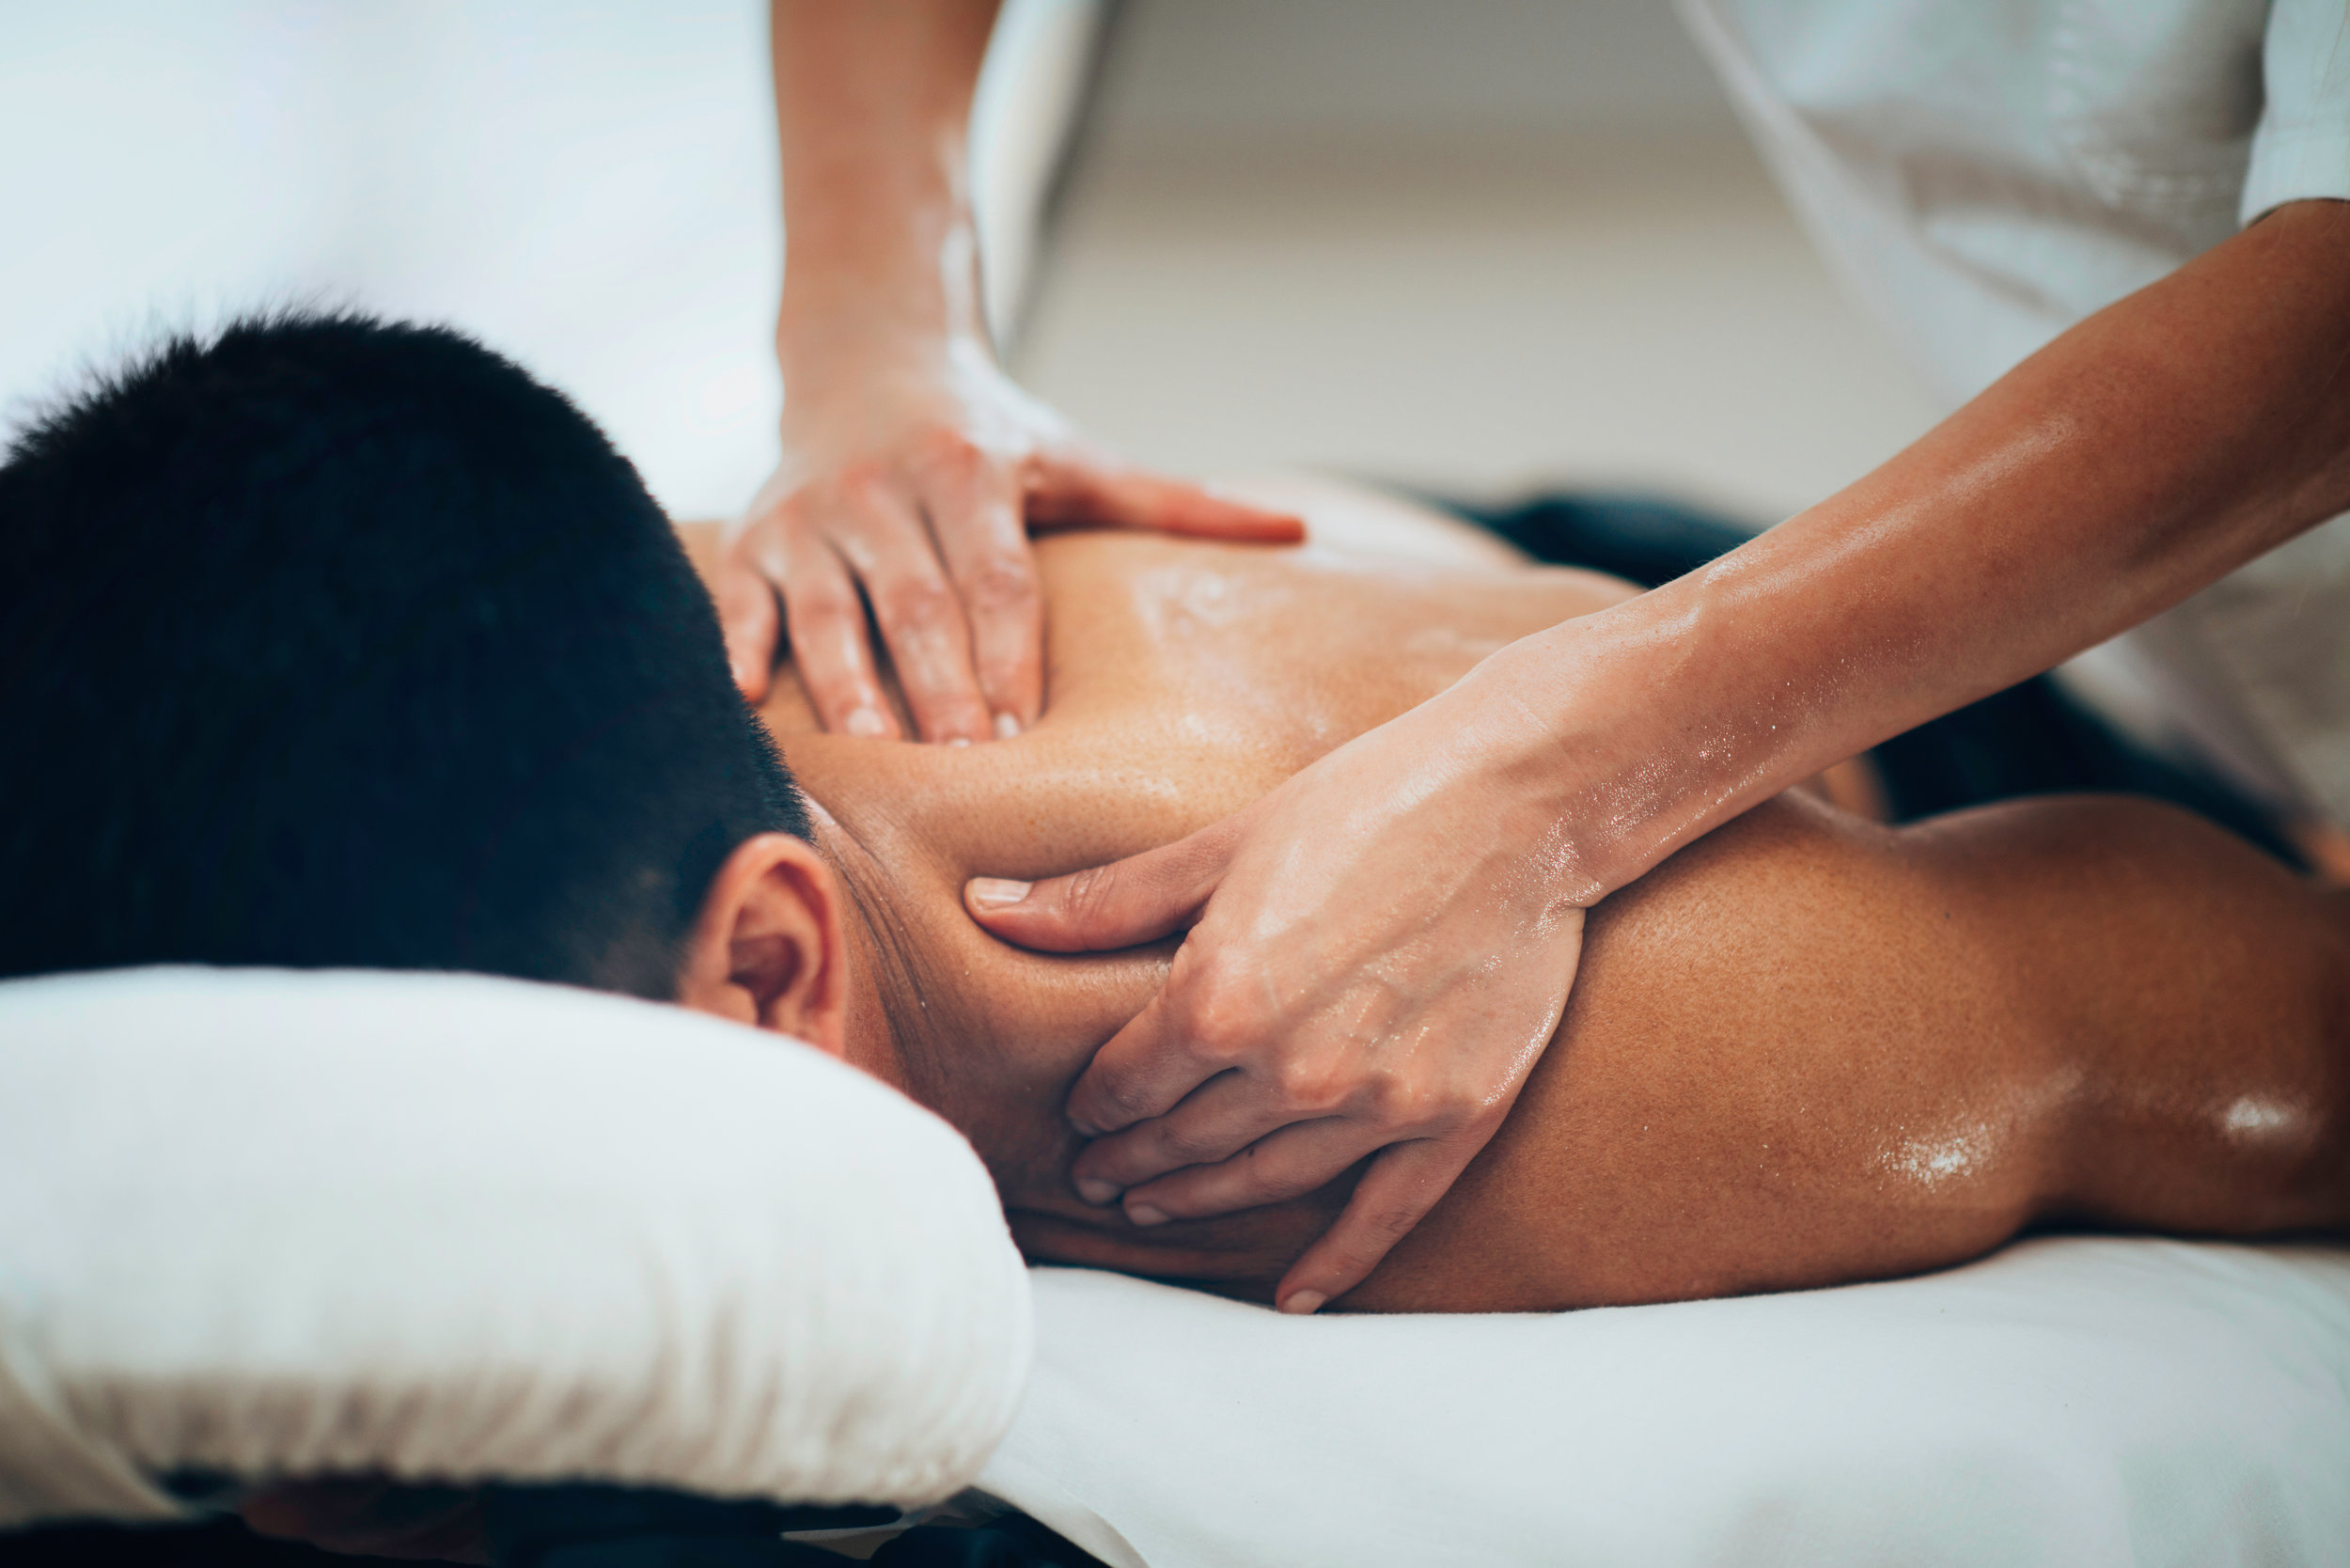 Deep Tissue & Therapeutic Massage - Deep Tissue MassageDeep tissue massage is designed to relieve pain and muscle tension throughout the body. This type of massage is extremely beneficial because it reaches the deepest layer of muscles, fascia (connective tissue surrounding the joints) and tendons. The goal in deep tissue massage is to breakdown adhesions (tense areas within the muscle). Adhesions in the muscle are very important to address because they cause pain, inflammation and limit motion of the muscles and joints.Therapeutic MassageTherapeutic Massage Is the mobilization of soft tissue (such as muscle, fascia and body fluids) to restore normal functional use. It can be used to assist in the treatment of most musculo-skeletal and associated problems, and regular Therapeutic Massage Therapy results in improved circulatory, lymphatic and neurological functioning.Pricing (before tax) :30 min - $4545 min - $67.560 min - $9075 min - $112.590 min - $135